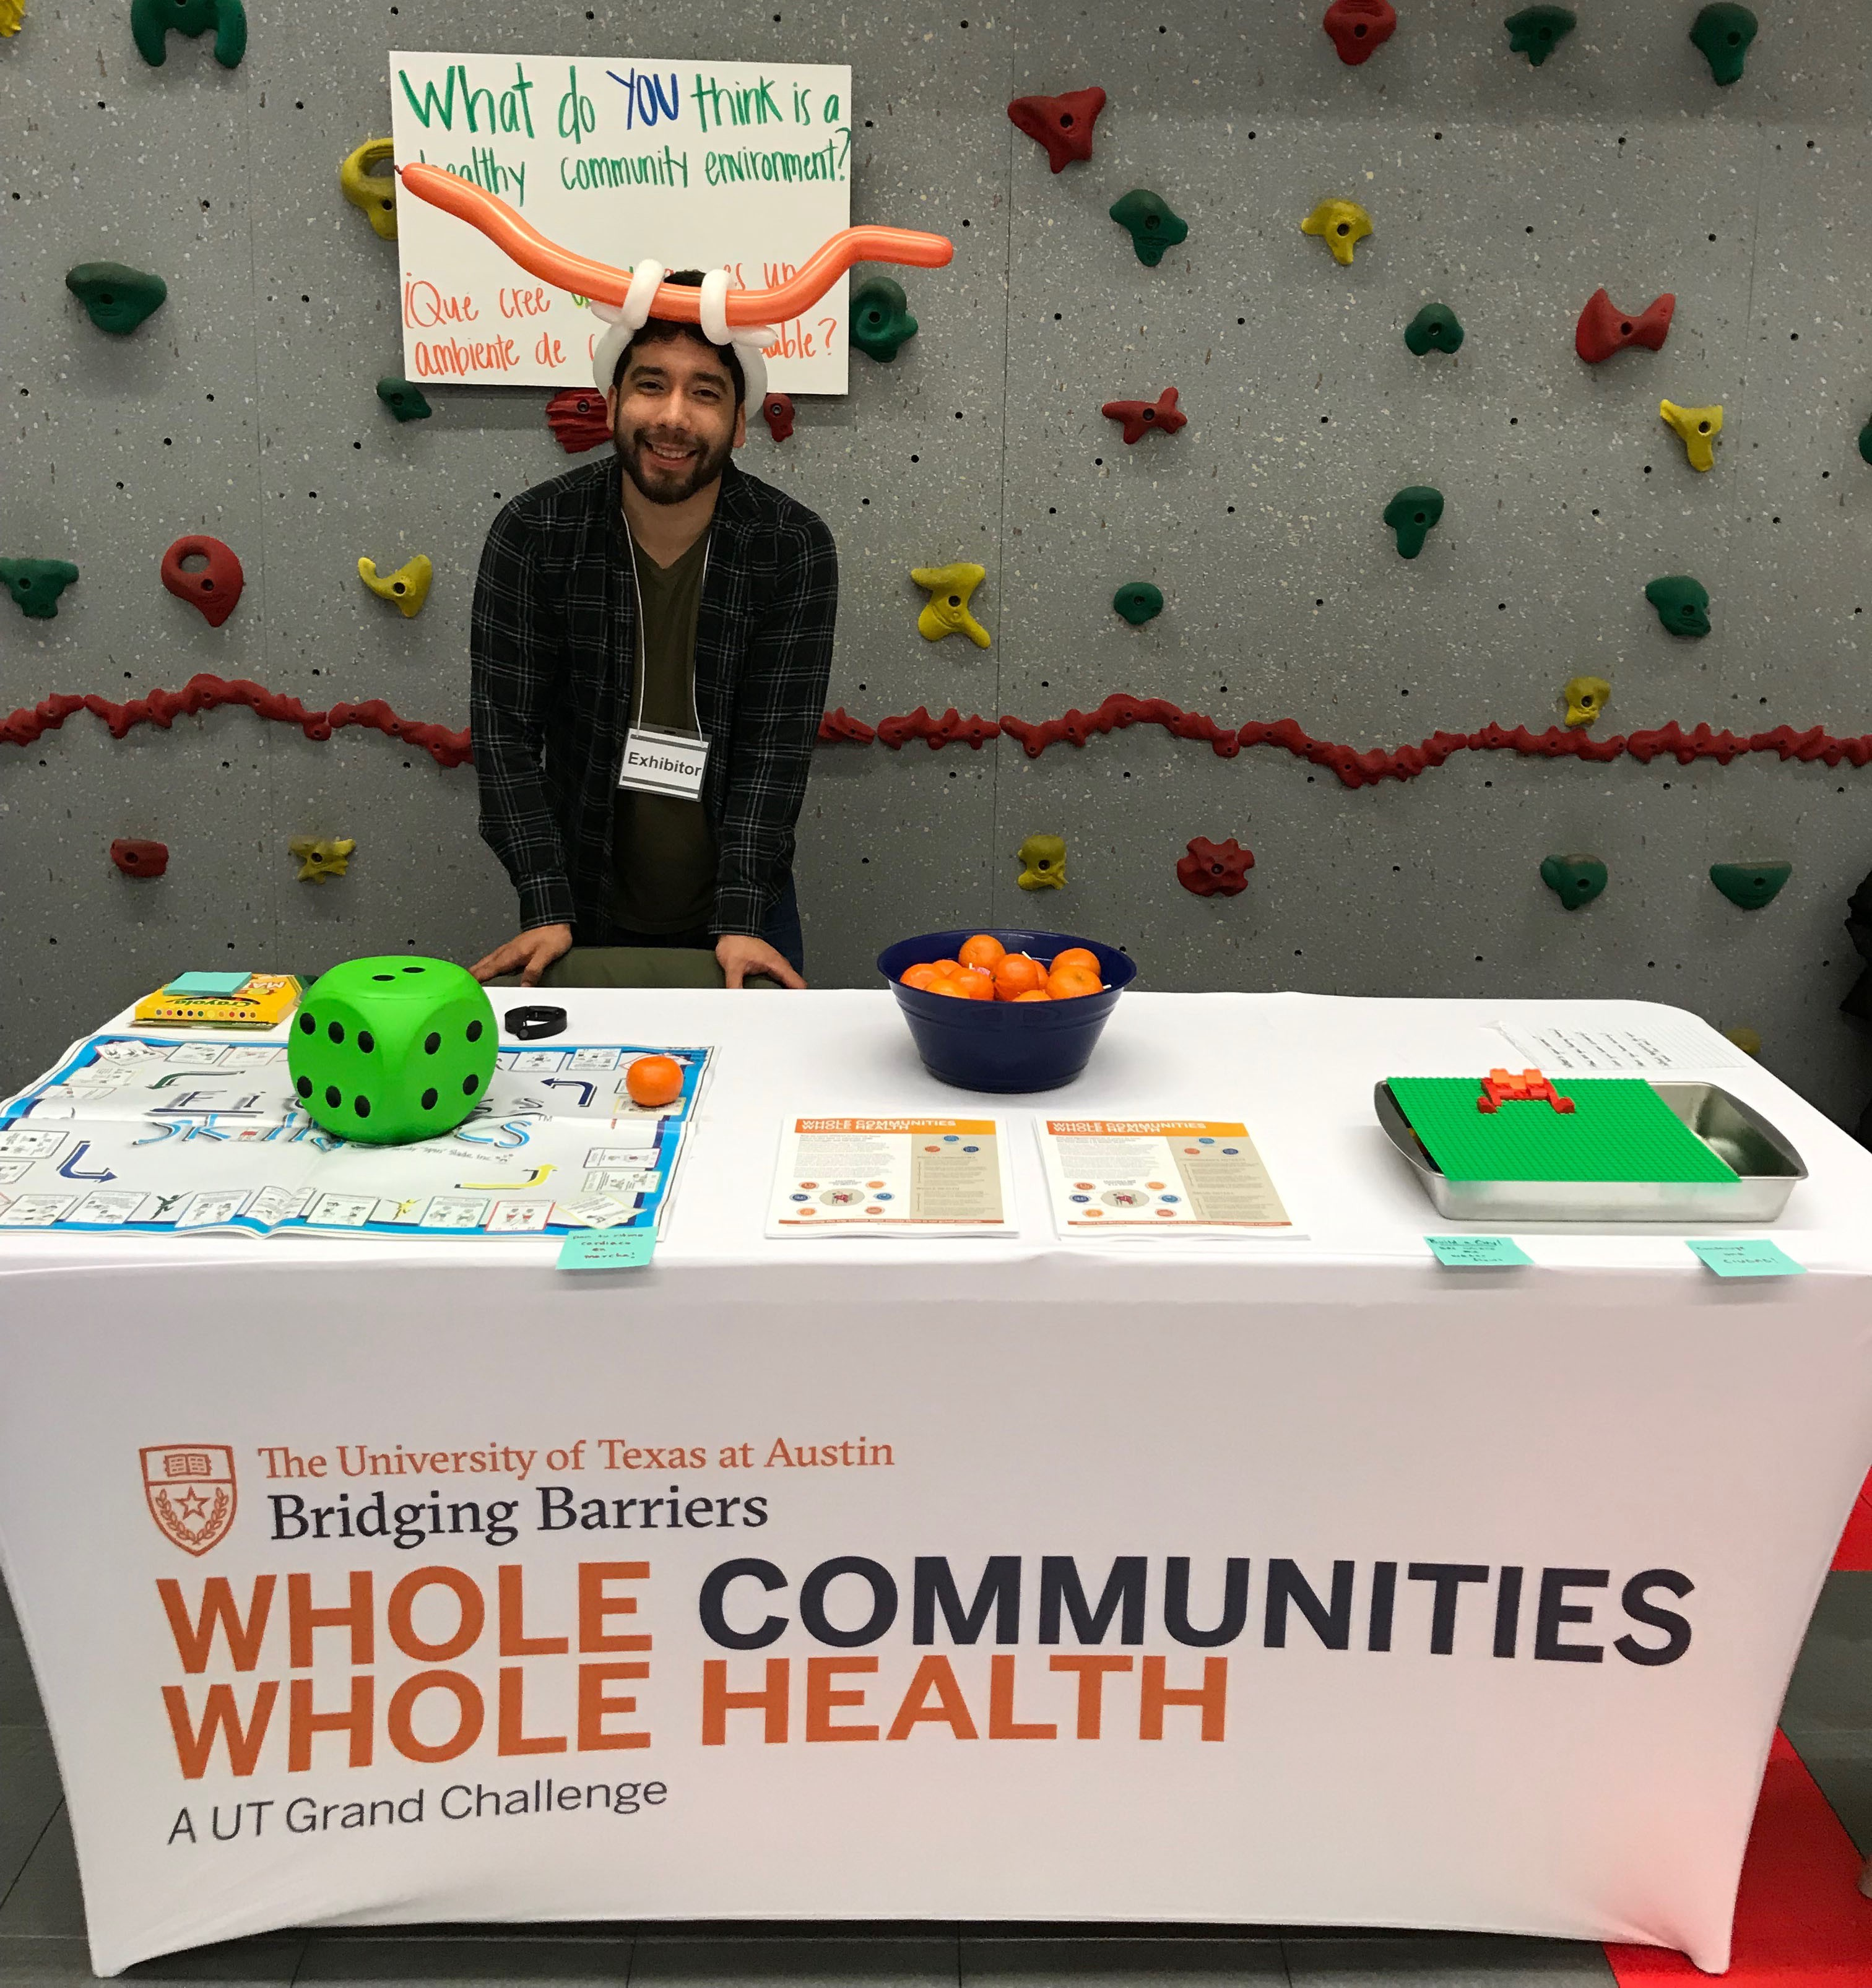 A UT Austin graduate student wears a longhorn hat and stands beside a Whole Communities–Whole Health table at an event.